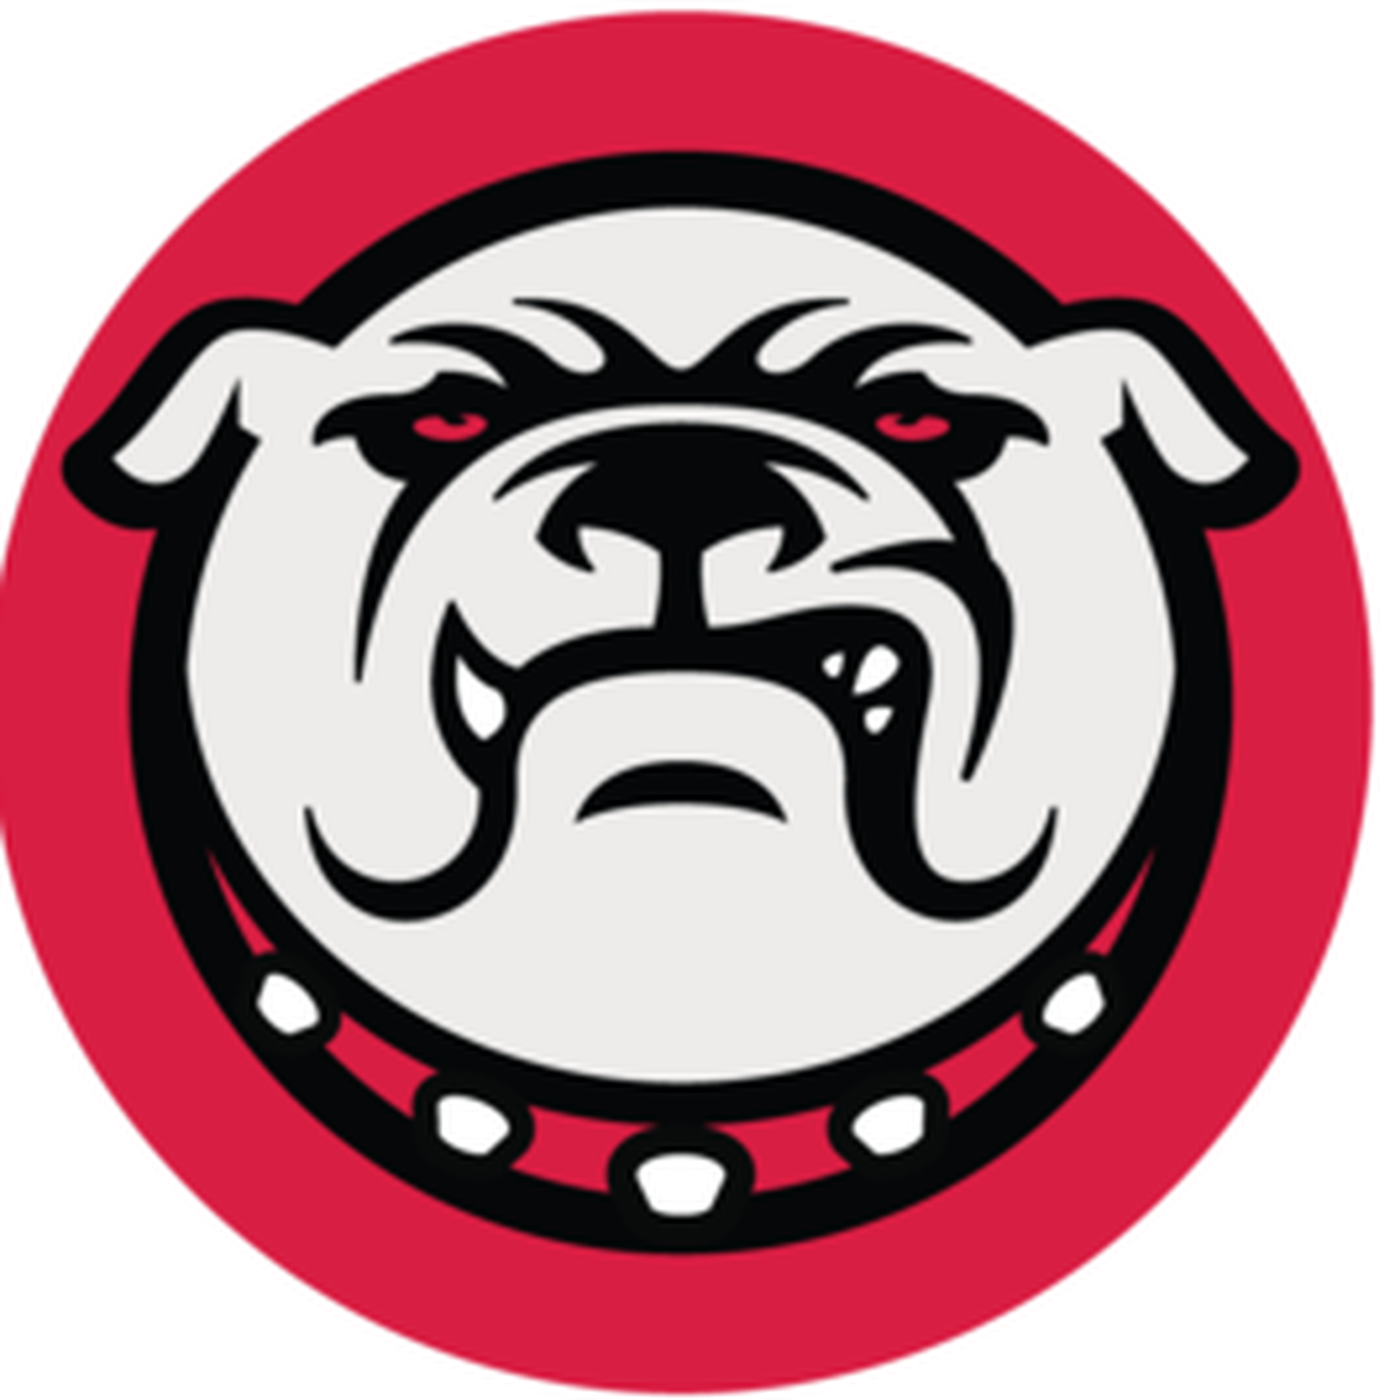 Diamond dawgs baseball clipart clipart download Georgia Diamond Dogs 11, Georgia State Panthers 6 - Dawg Sports clipart download